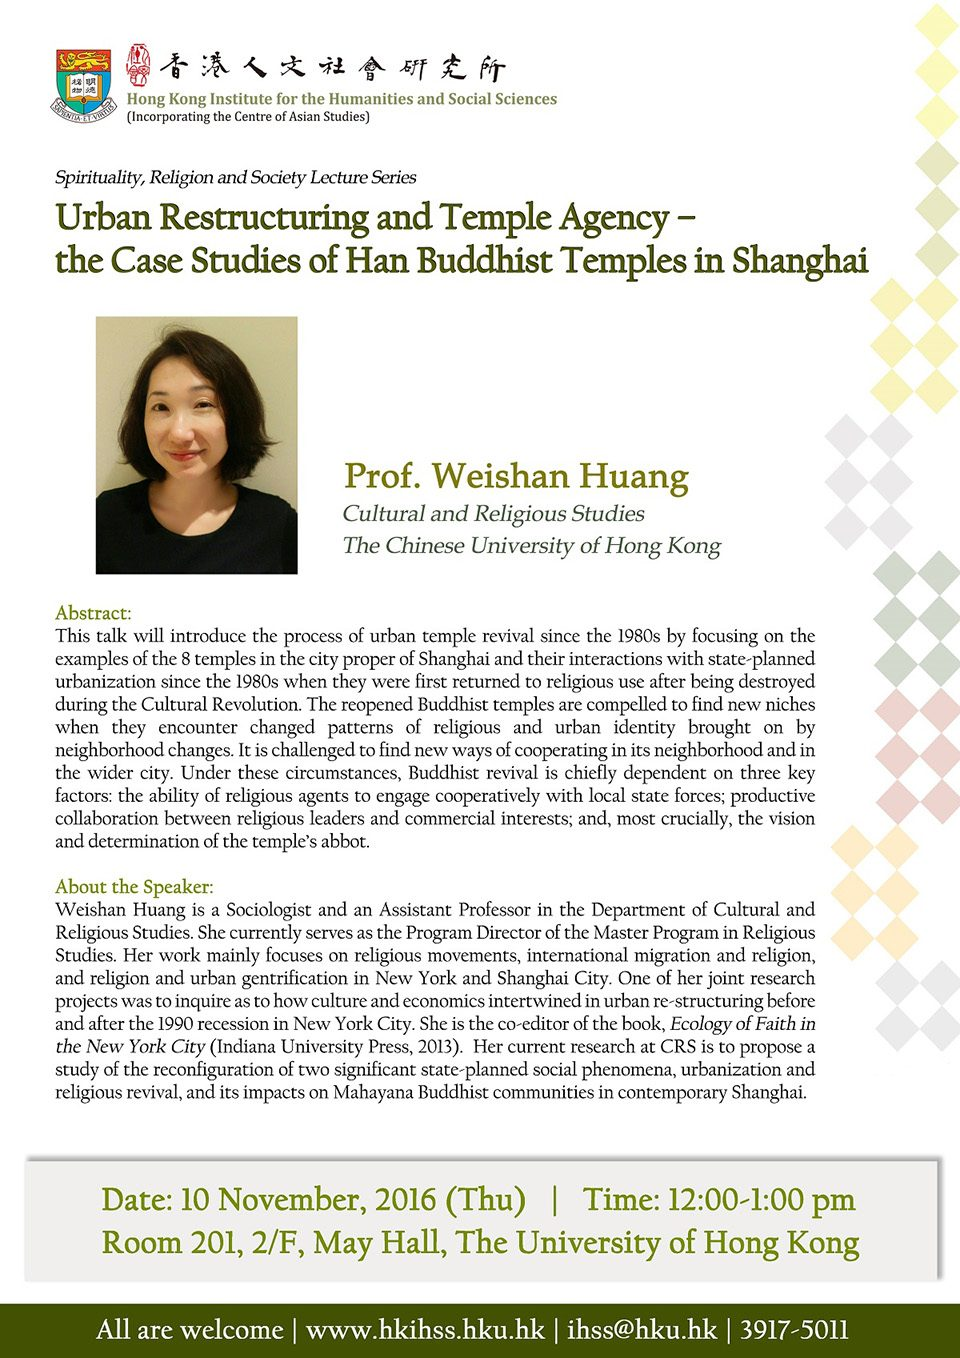 "Spirituality, Religion and Society Lecture Series ""Urban Restructuring and Temple Agency – the Case Studies of Han Buddhist Temples in Shanghai"" by Professor Weishan Huang (November 10, 2016)"